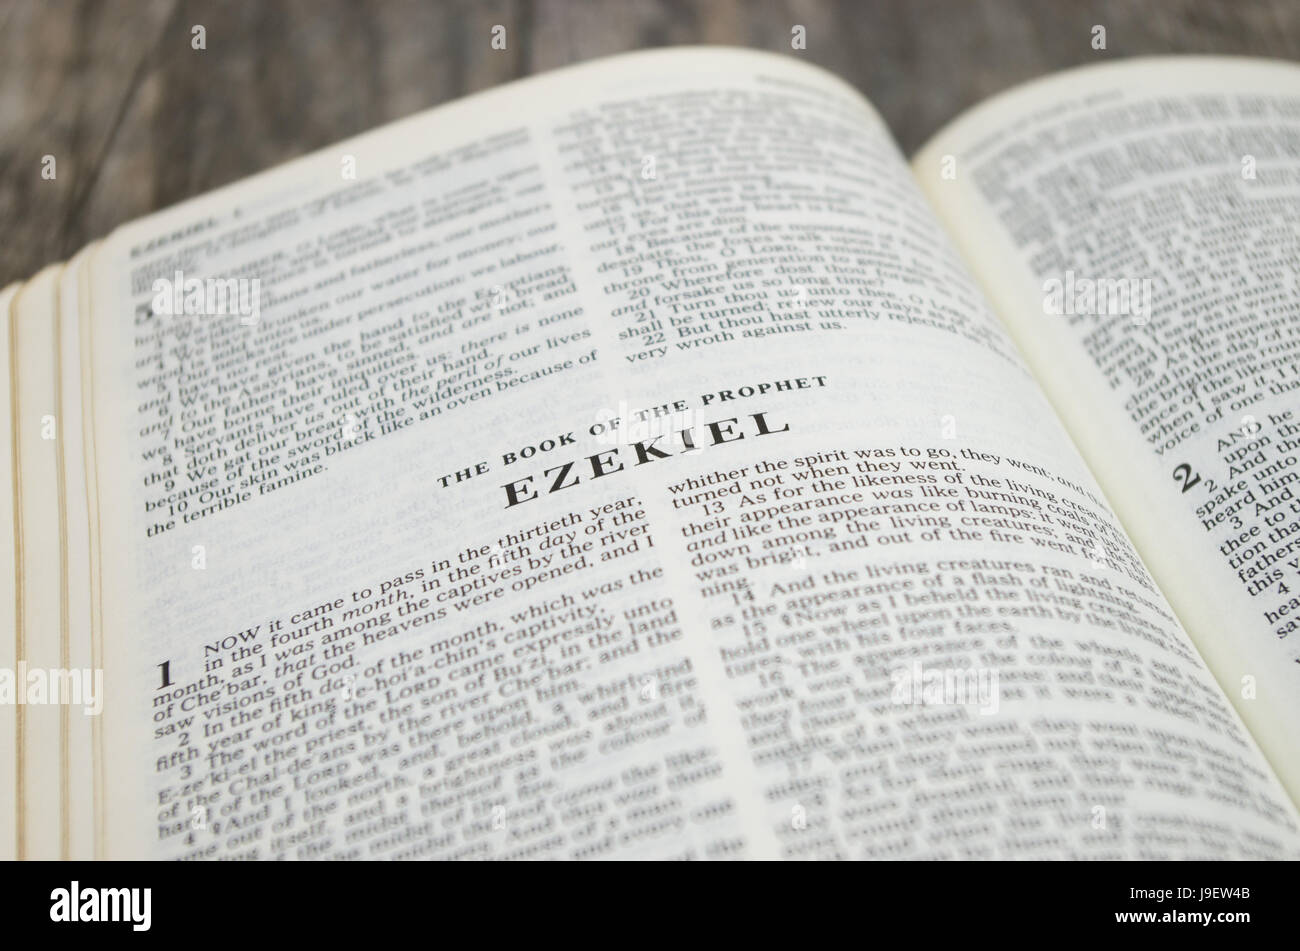 Title page for the book of Ezekiel in the Bible – King James Version - Stock Image